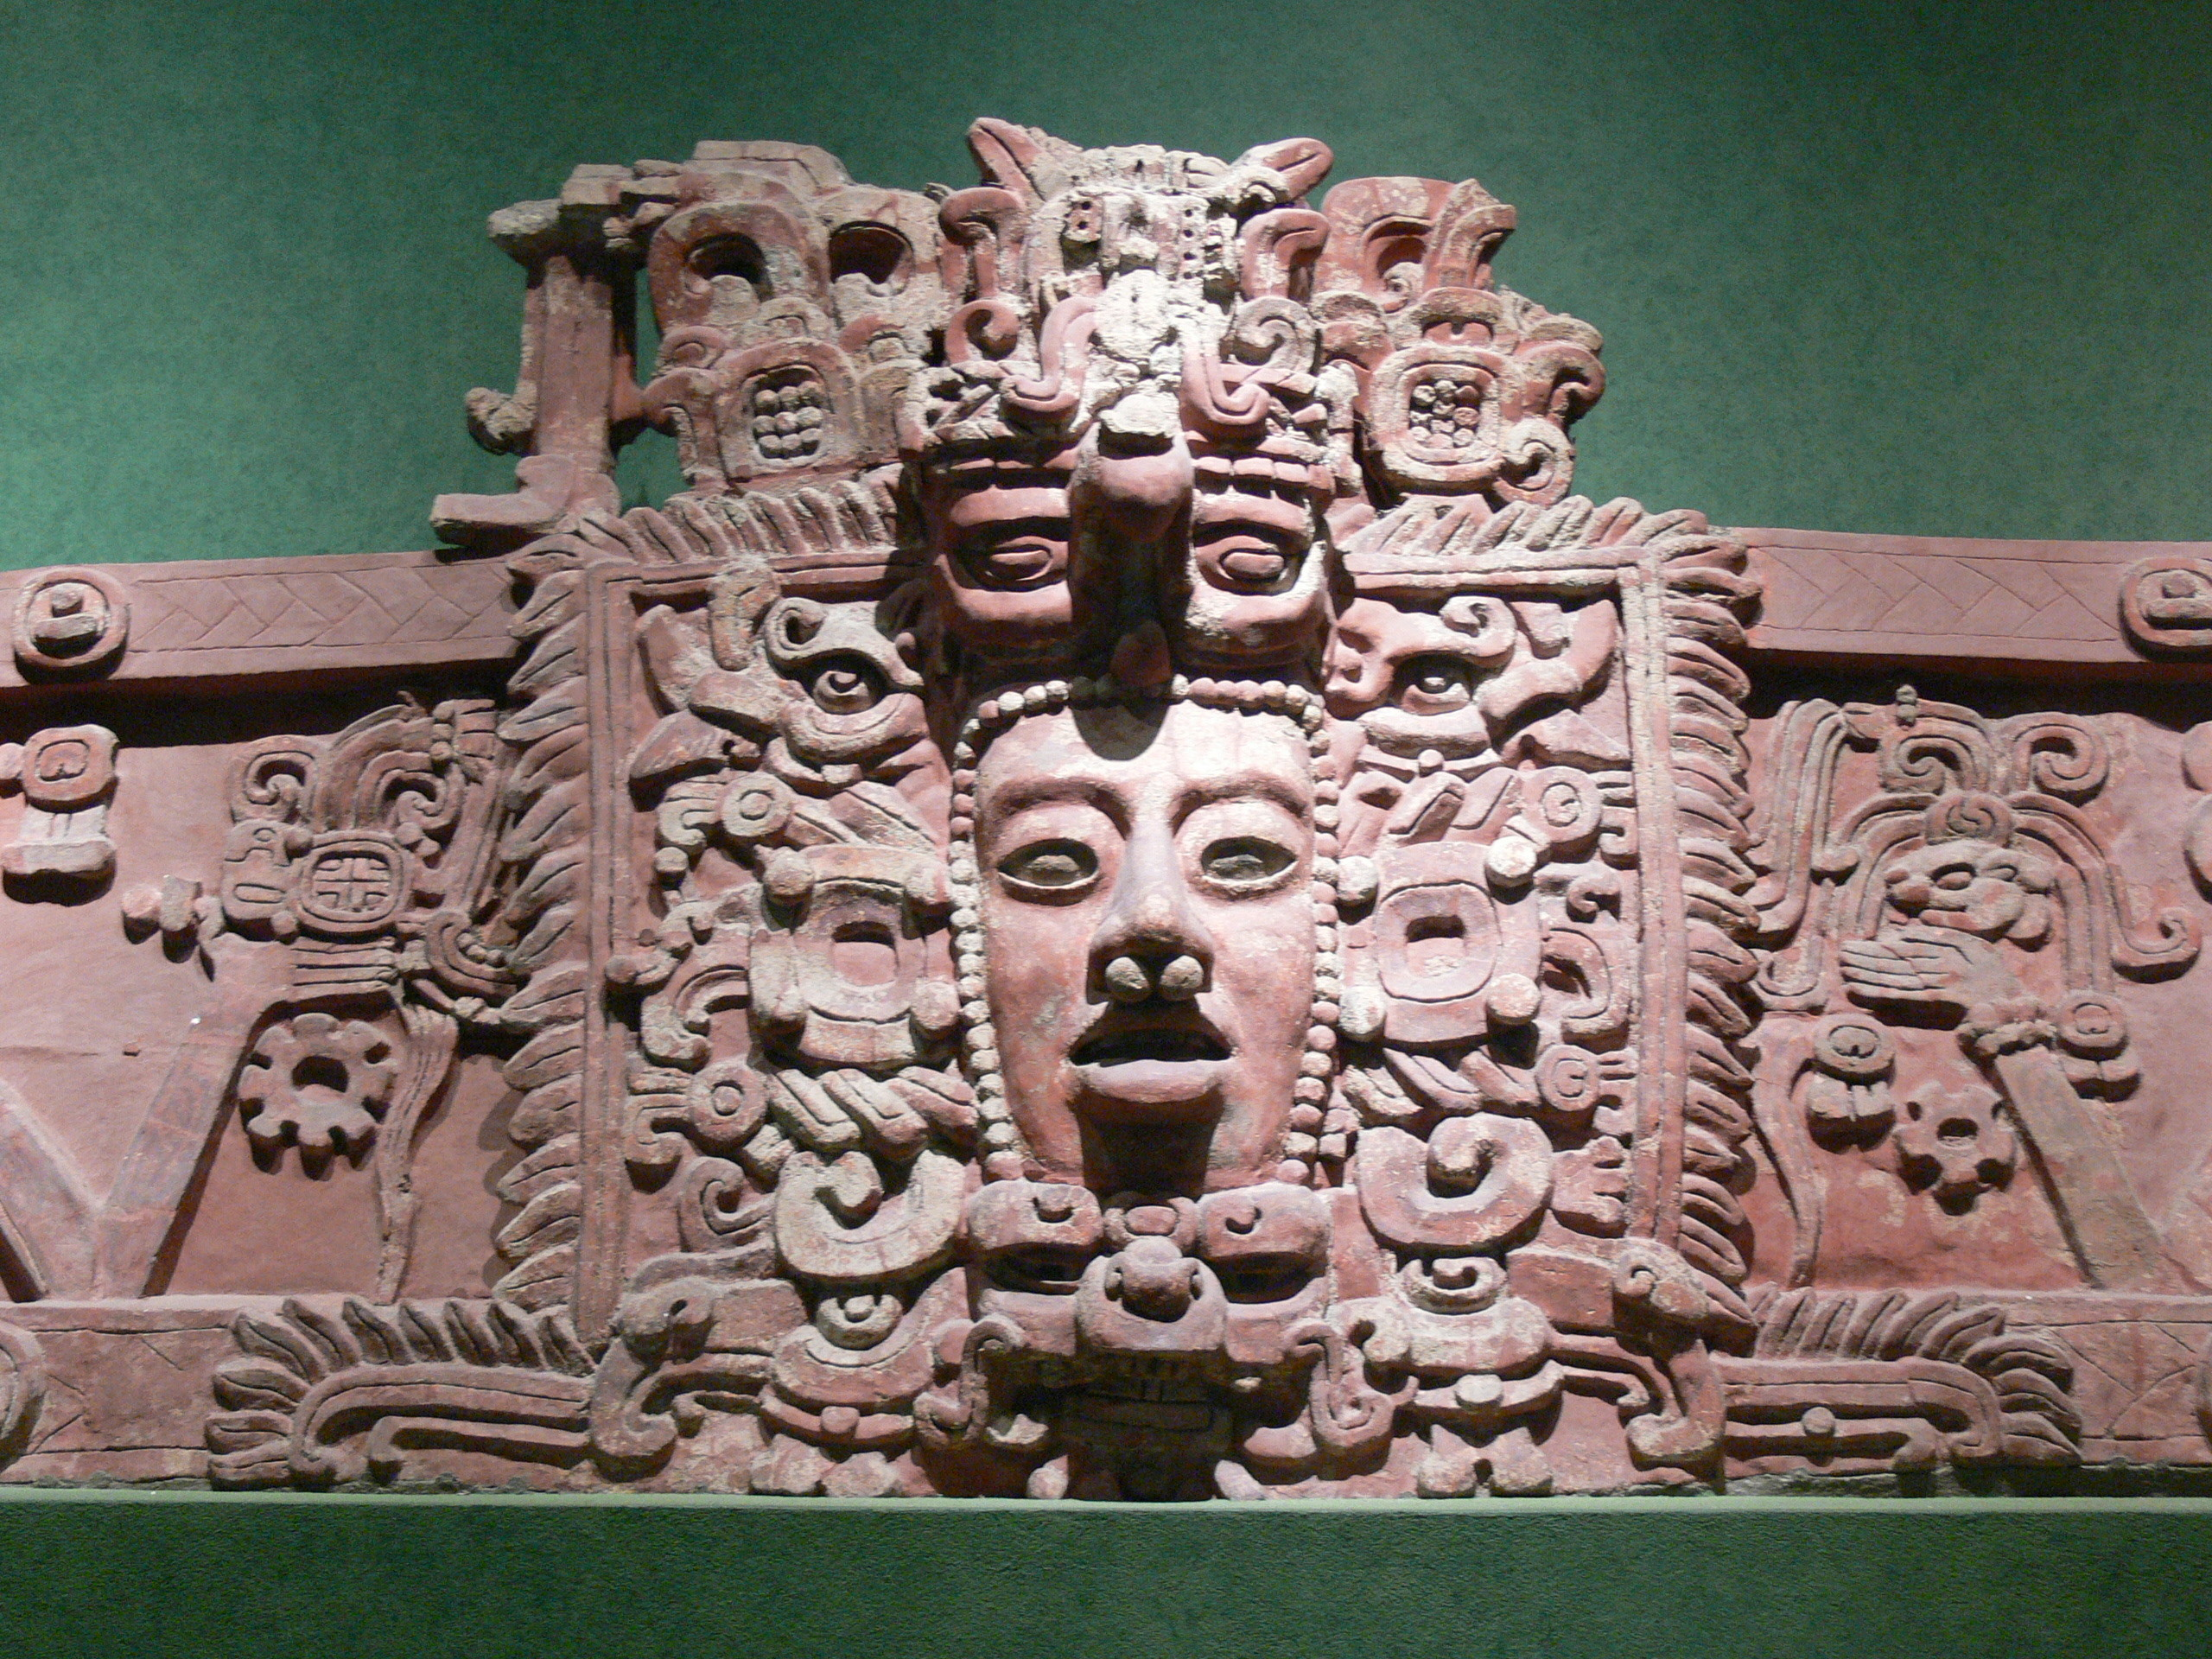 http://upload.wikimedia.org/wikipedia/commons/8/84/Maya-Maske.jpg